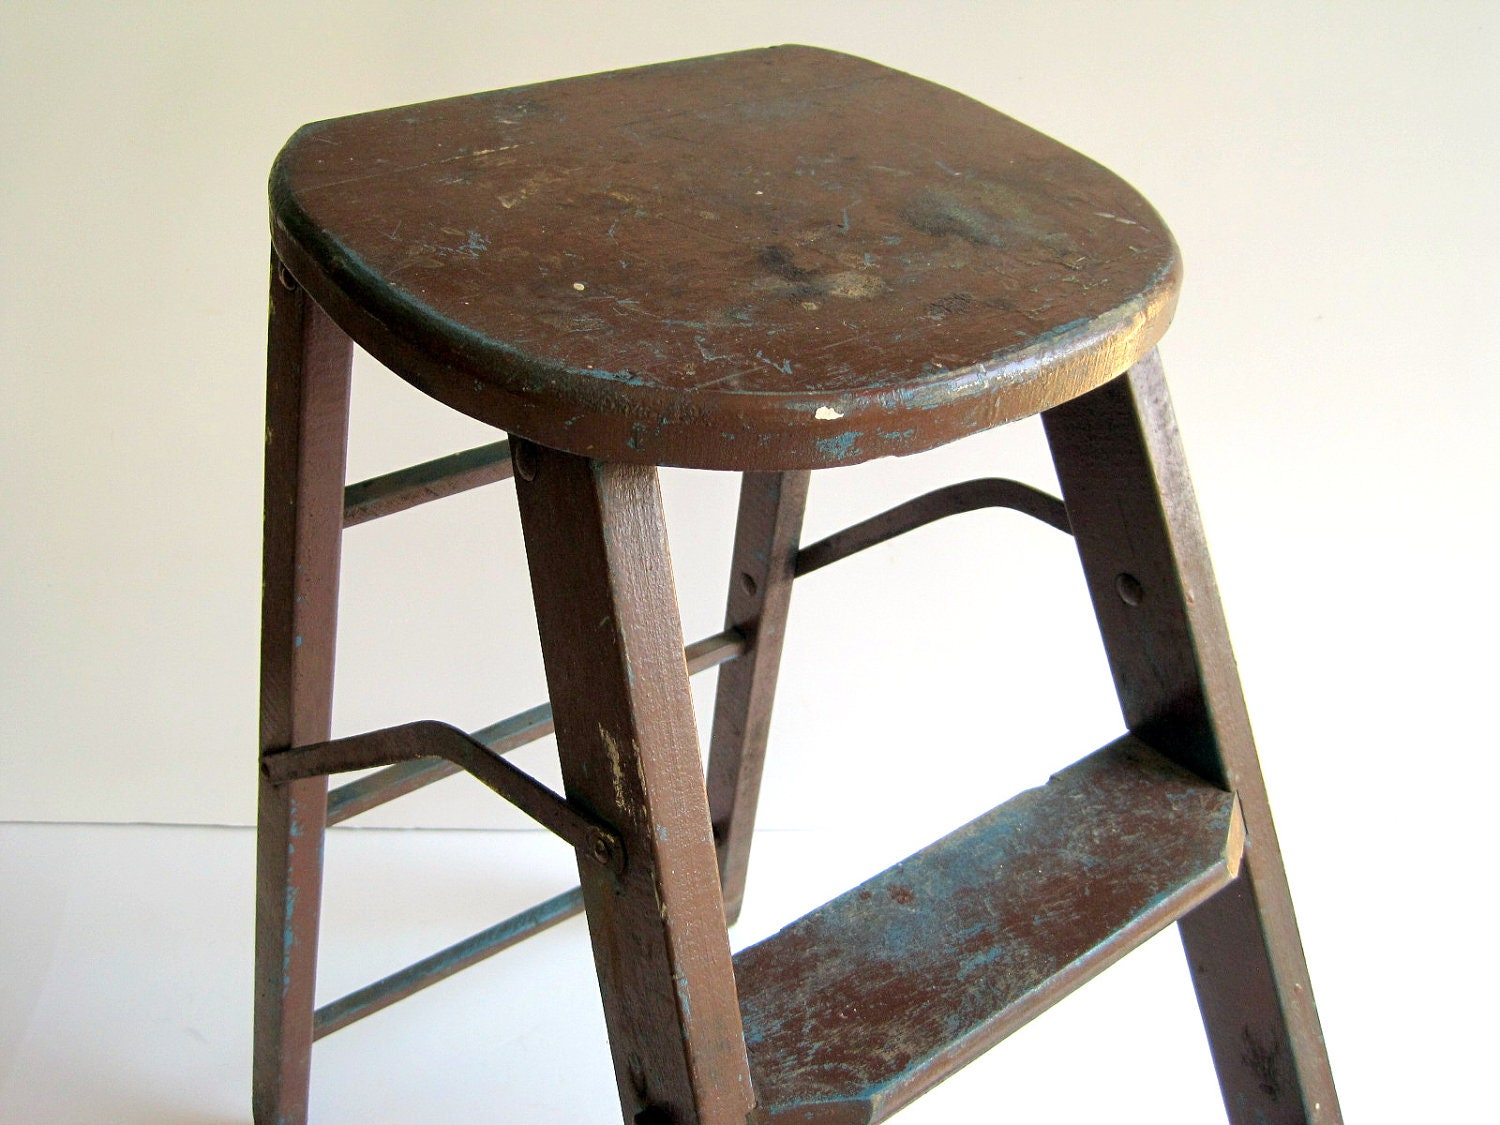 Vintage Wood Step Ladder Rustic Stool Early 20th Century